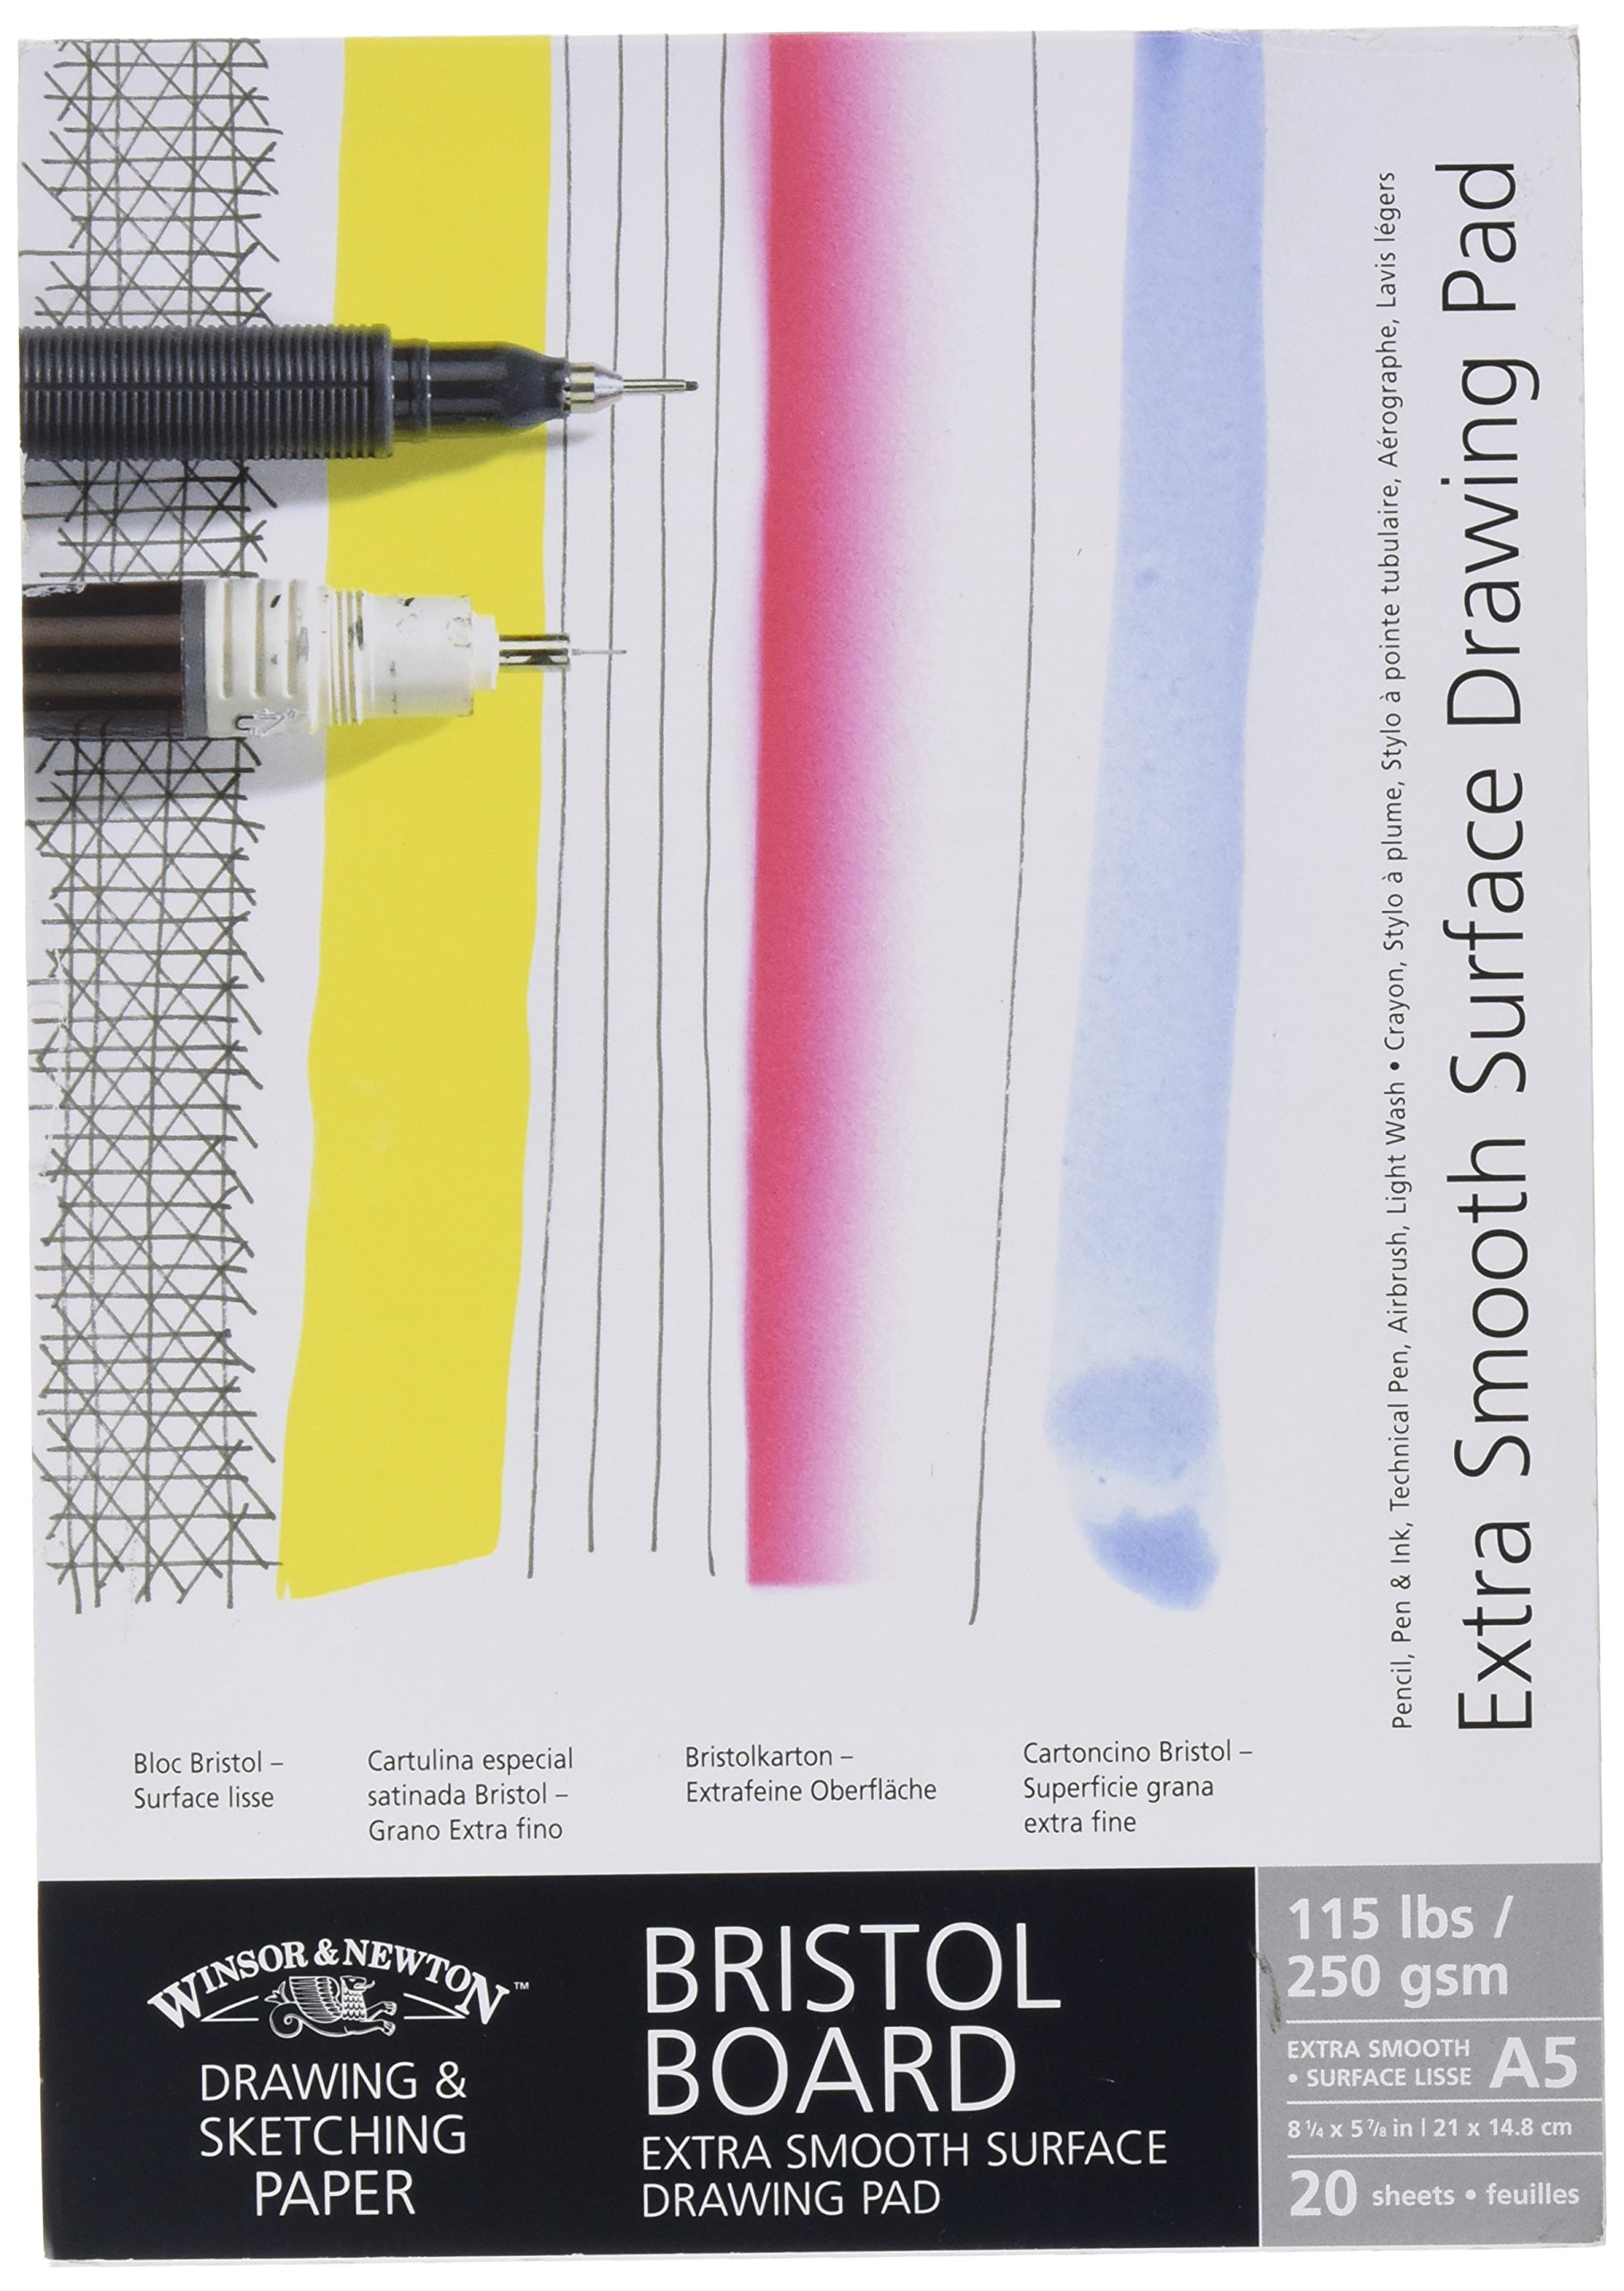 Winsor & Newton A5 Extra Smooth Bristol Board Gummed Pad by Winsor & Newton